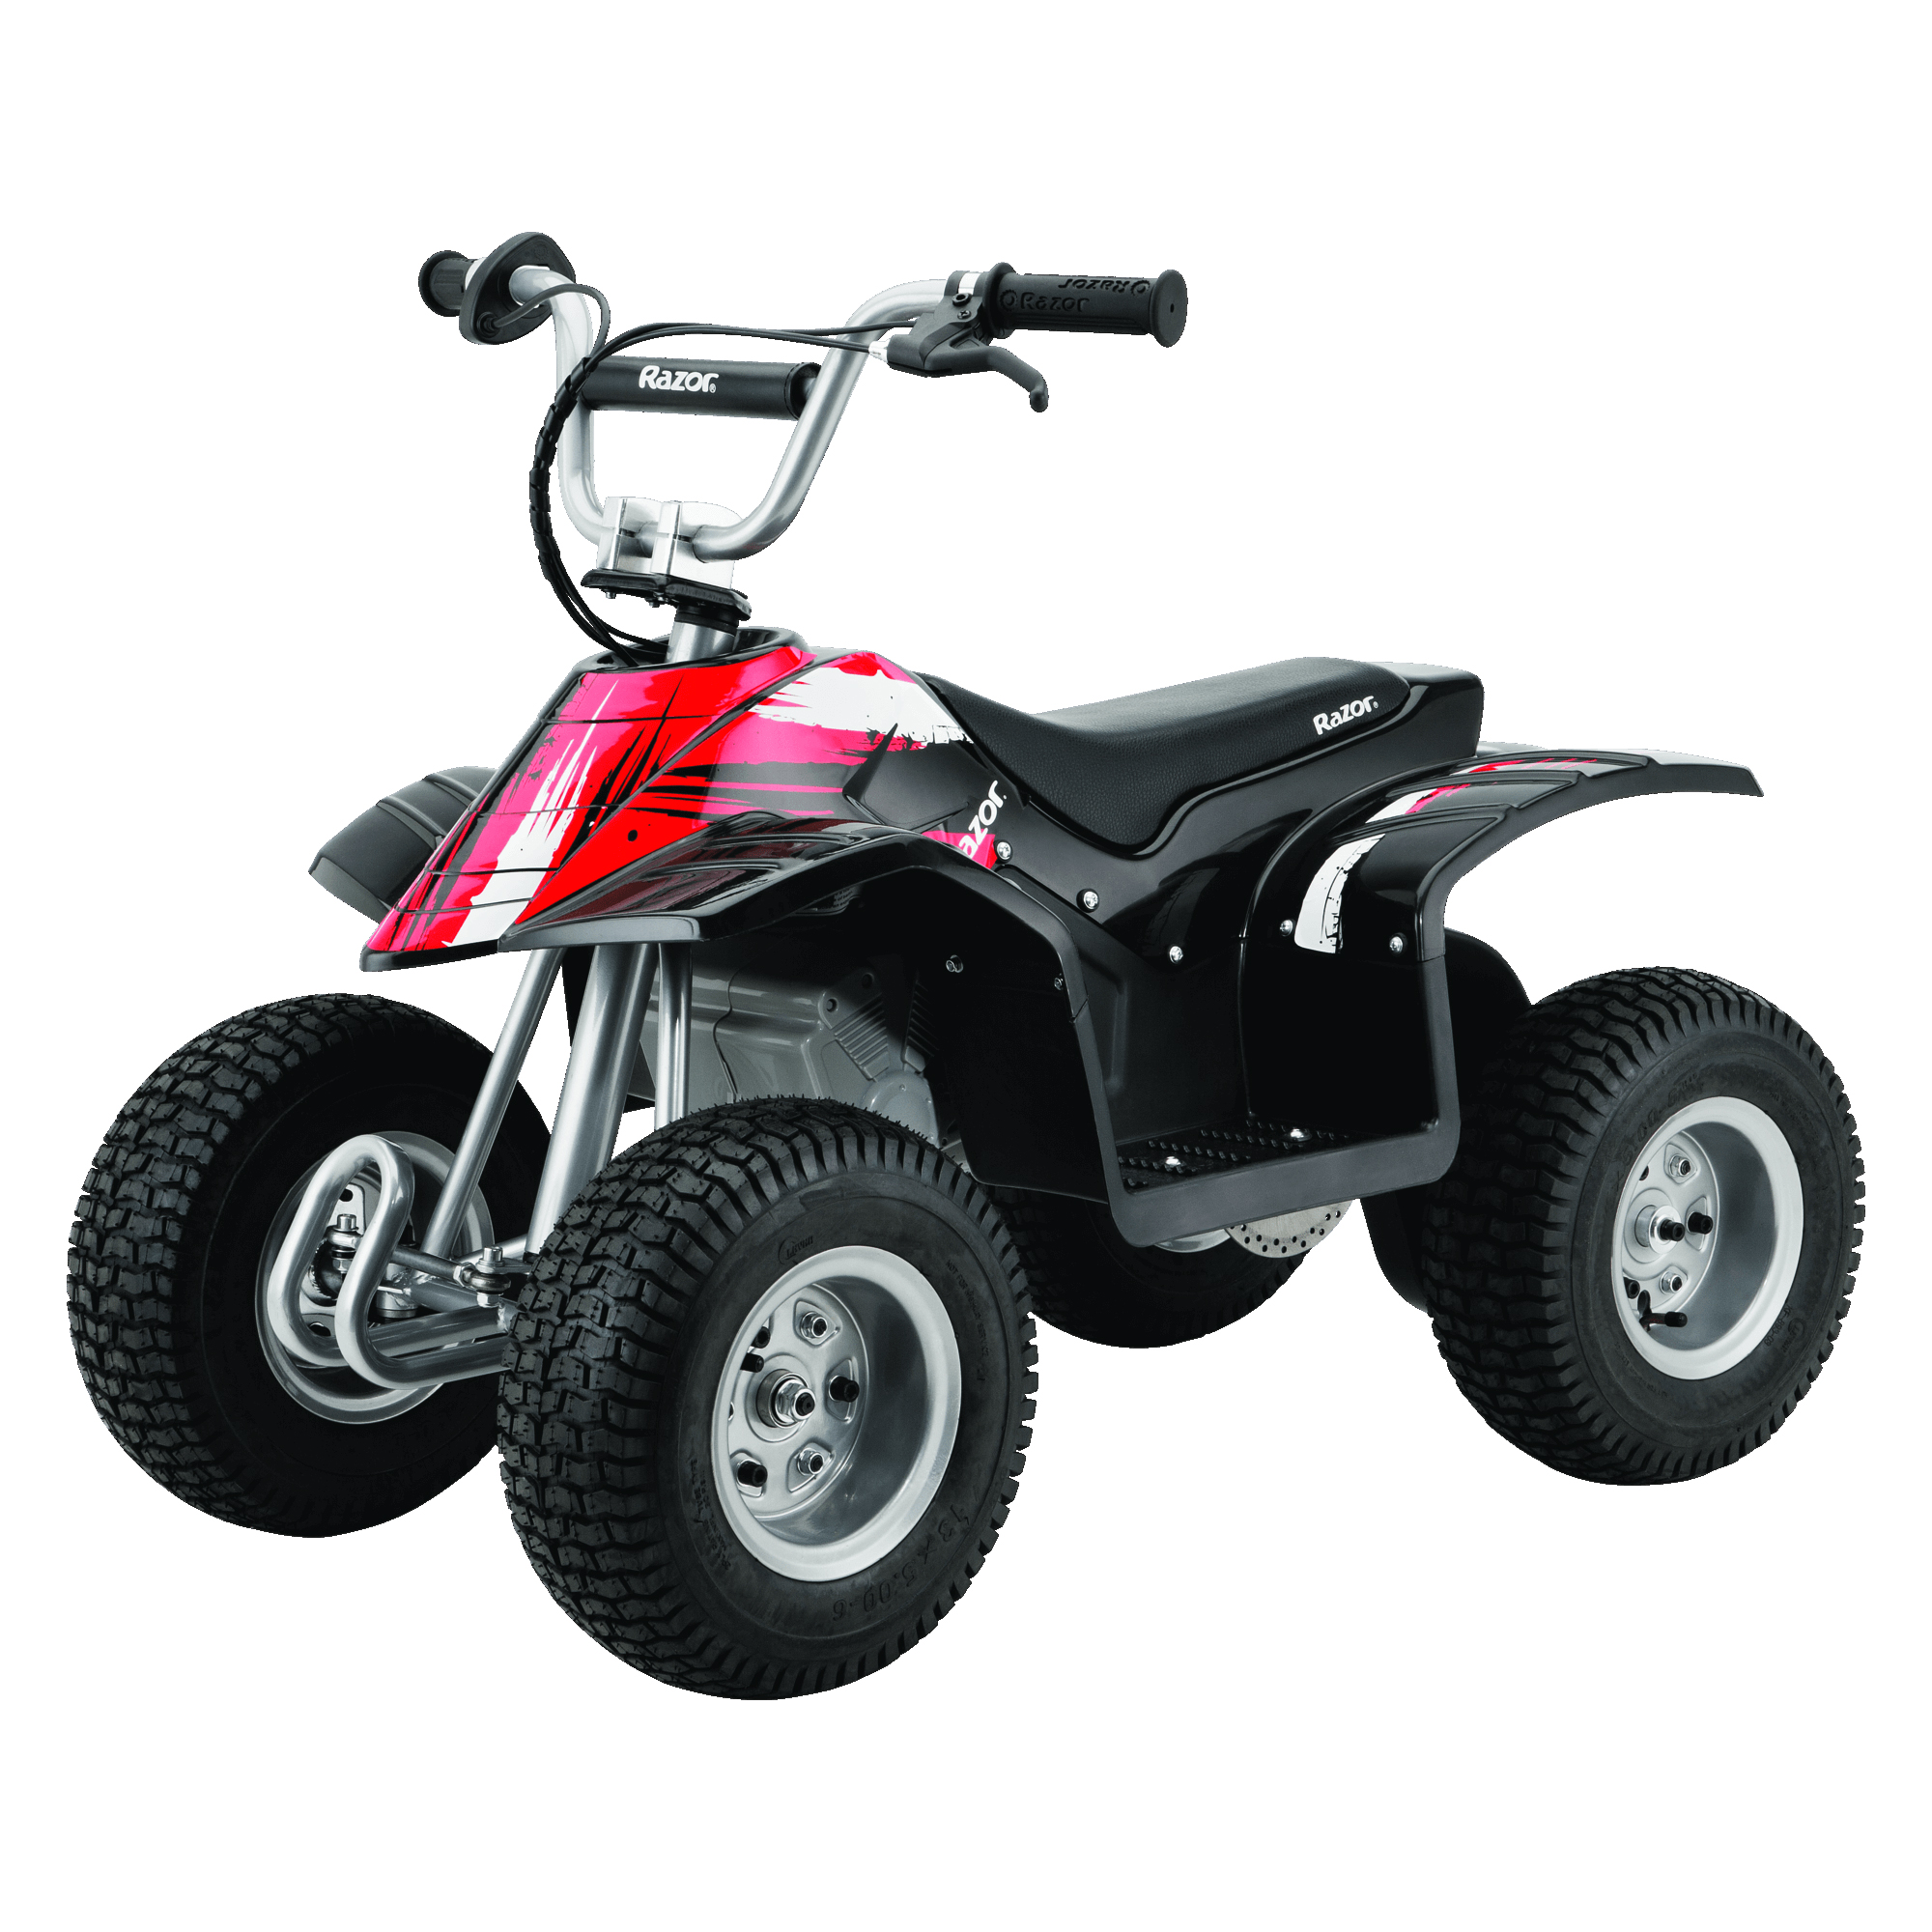 Razor Dirt Quad Parts - Razor Scooter Parts - All Recreational Brands -  Recreational Scooter Parts : Monster Scooter Parts